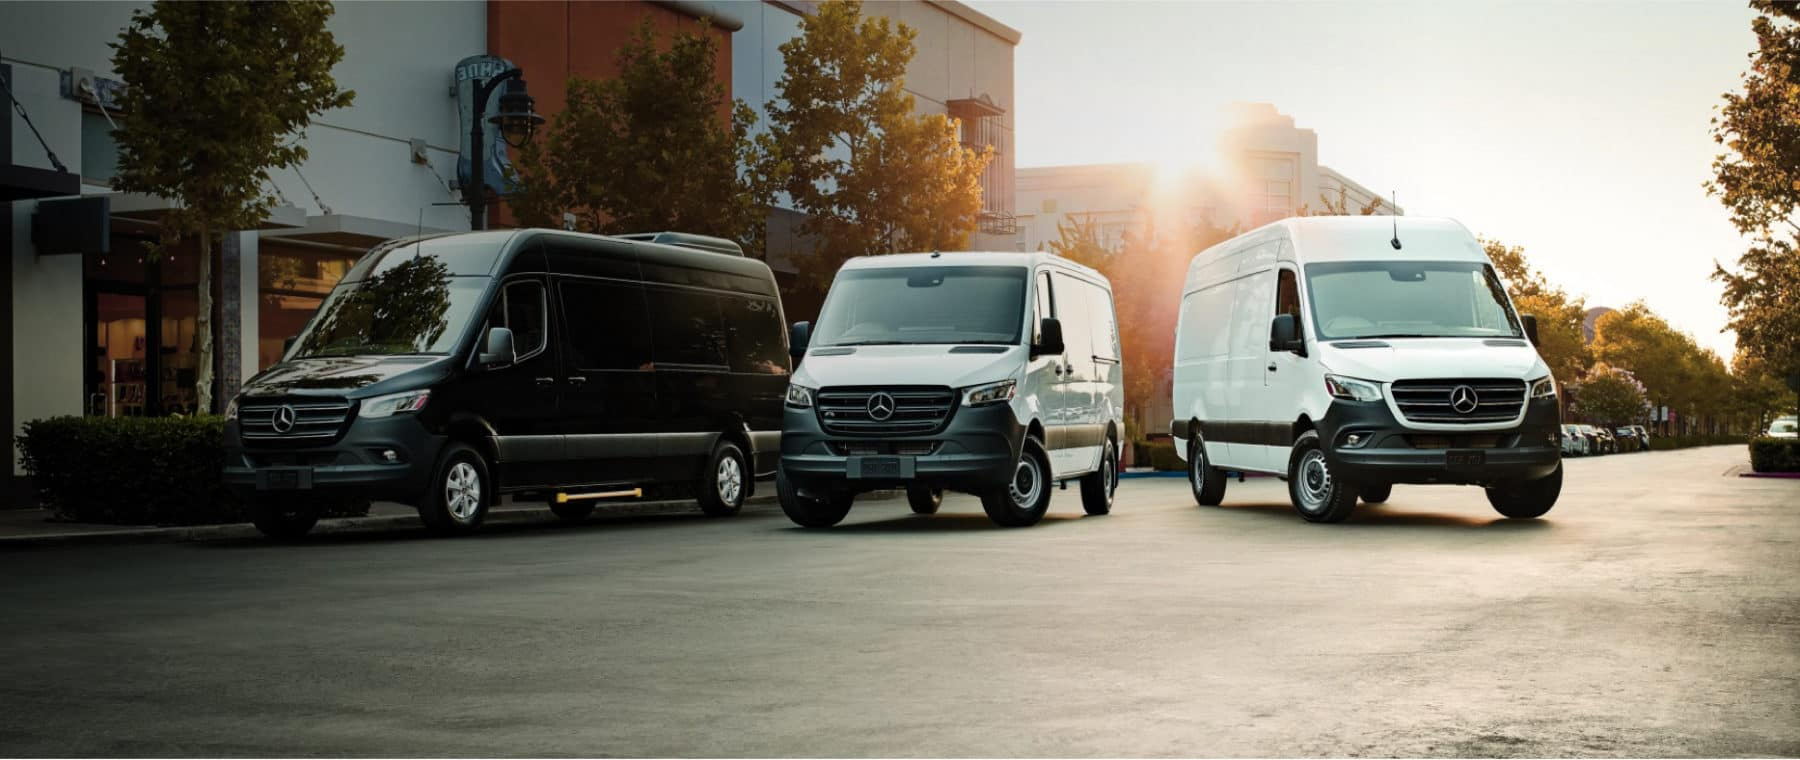 Mercedes Benz Commercial Trucks Lines Up